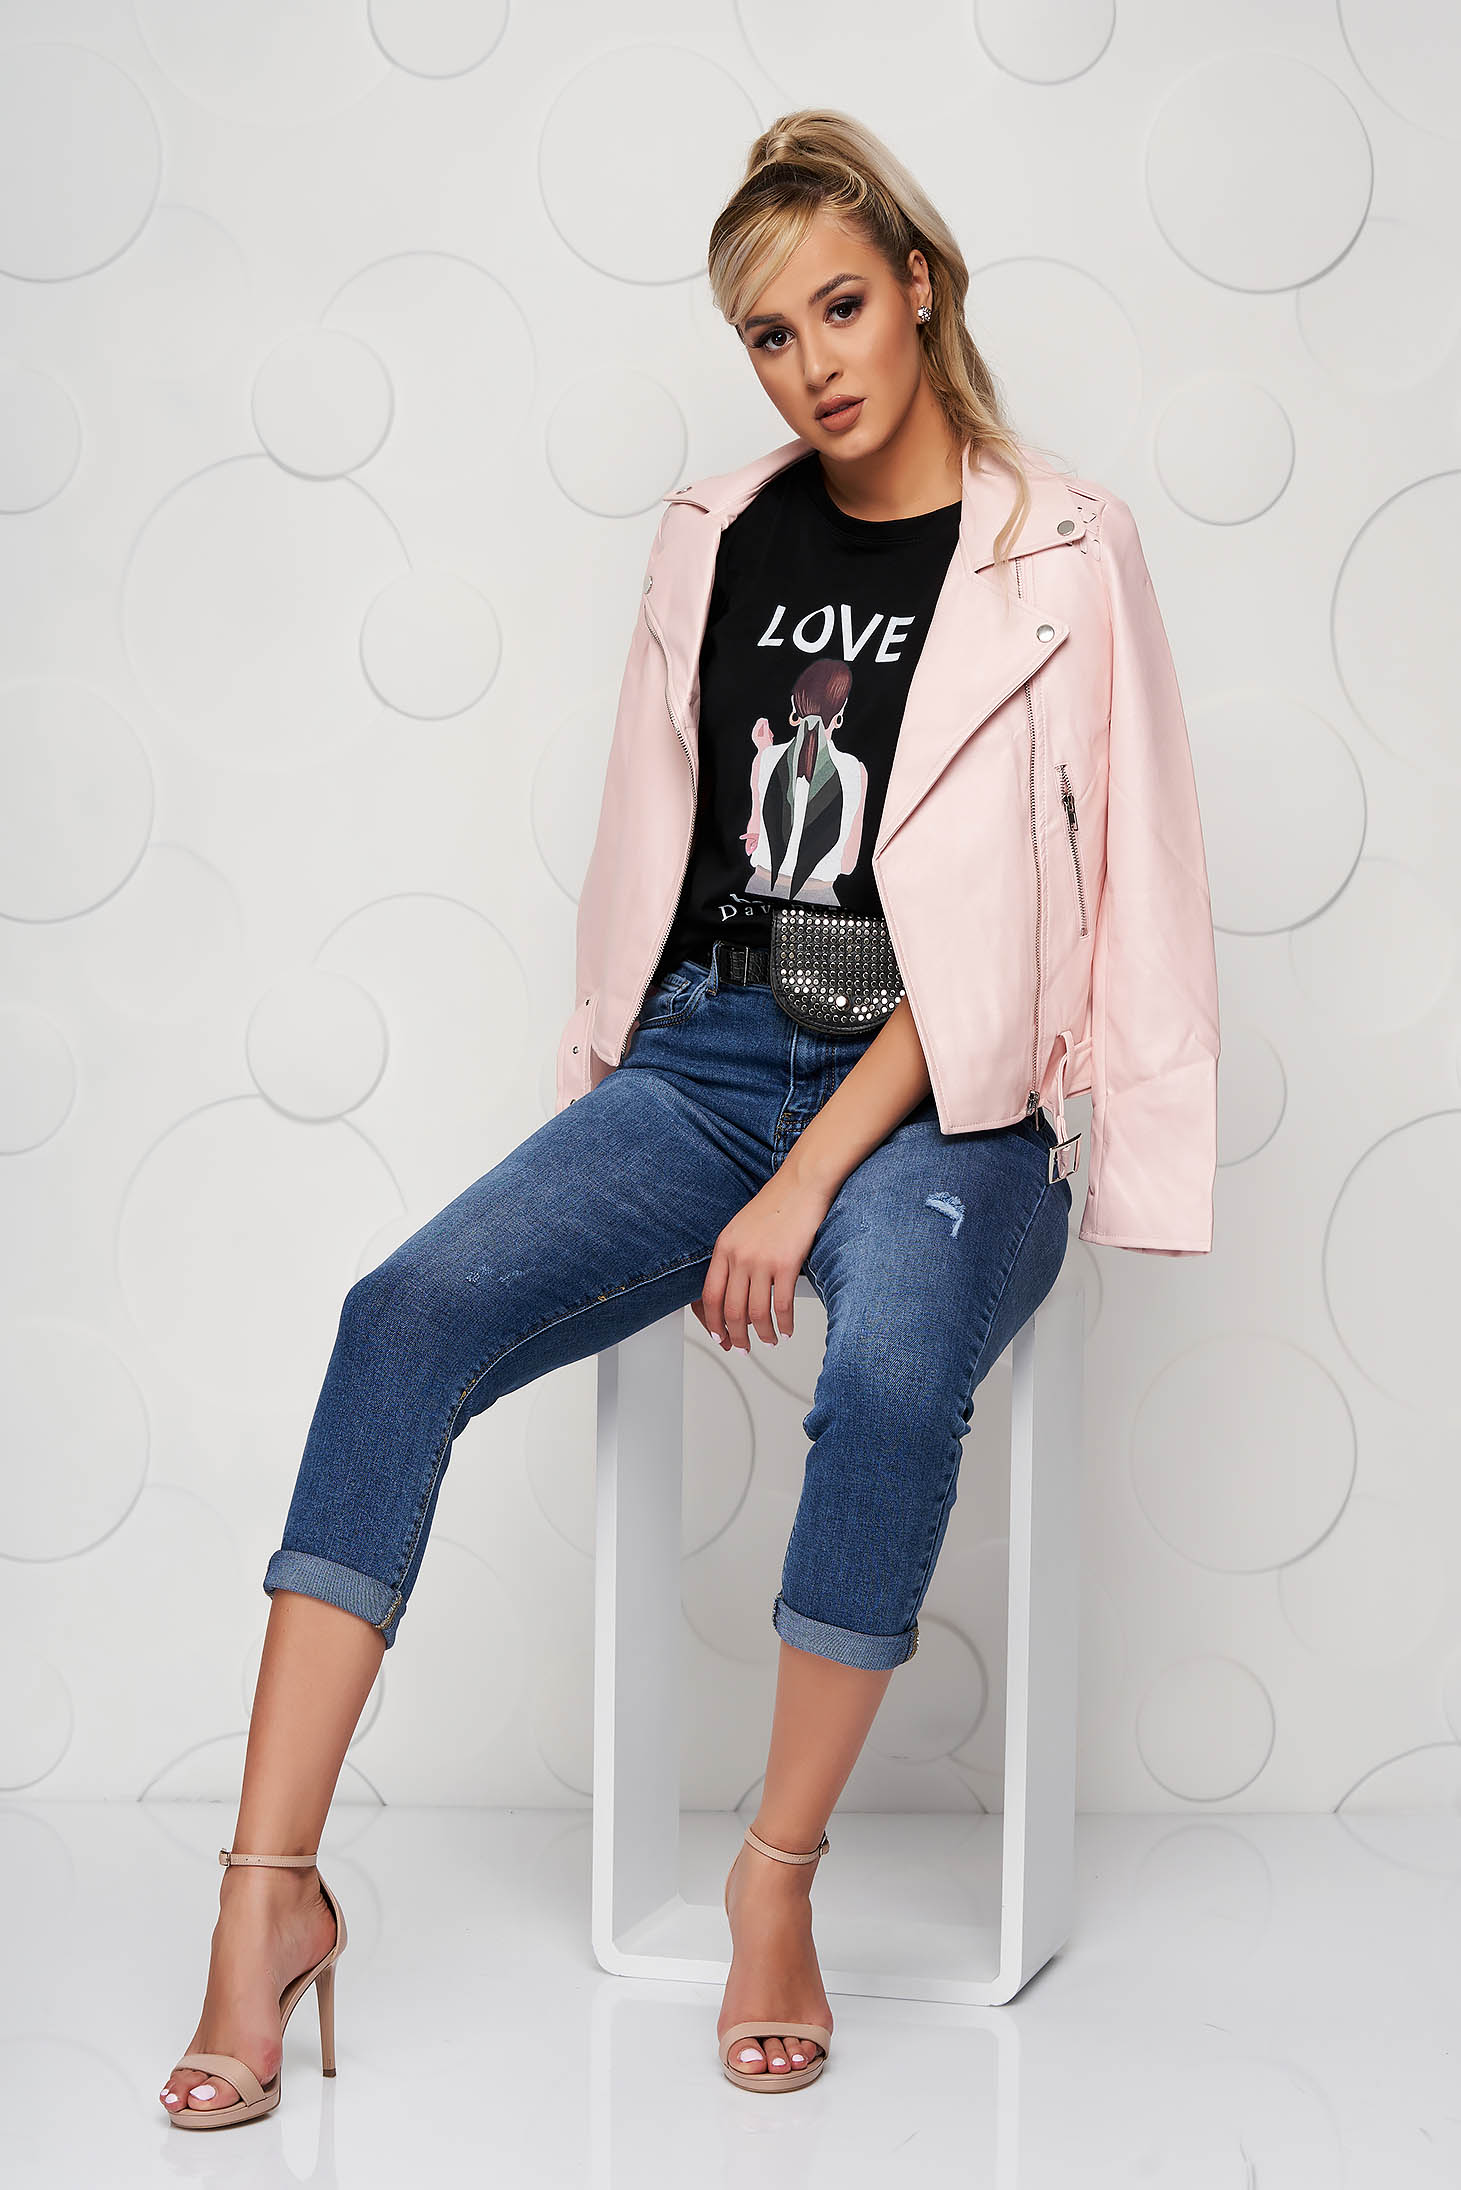 Pink from ecological leather casual short cut jacket accessorized with belt